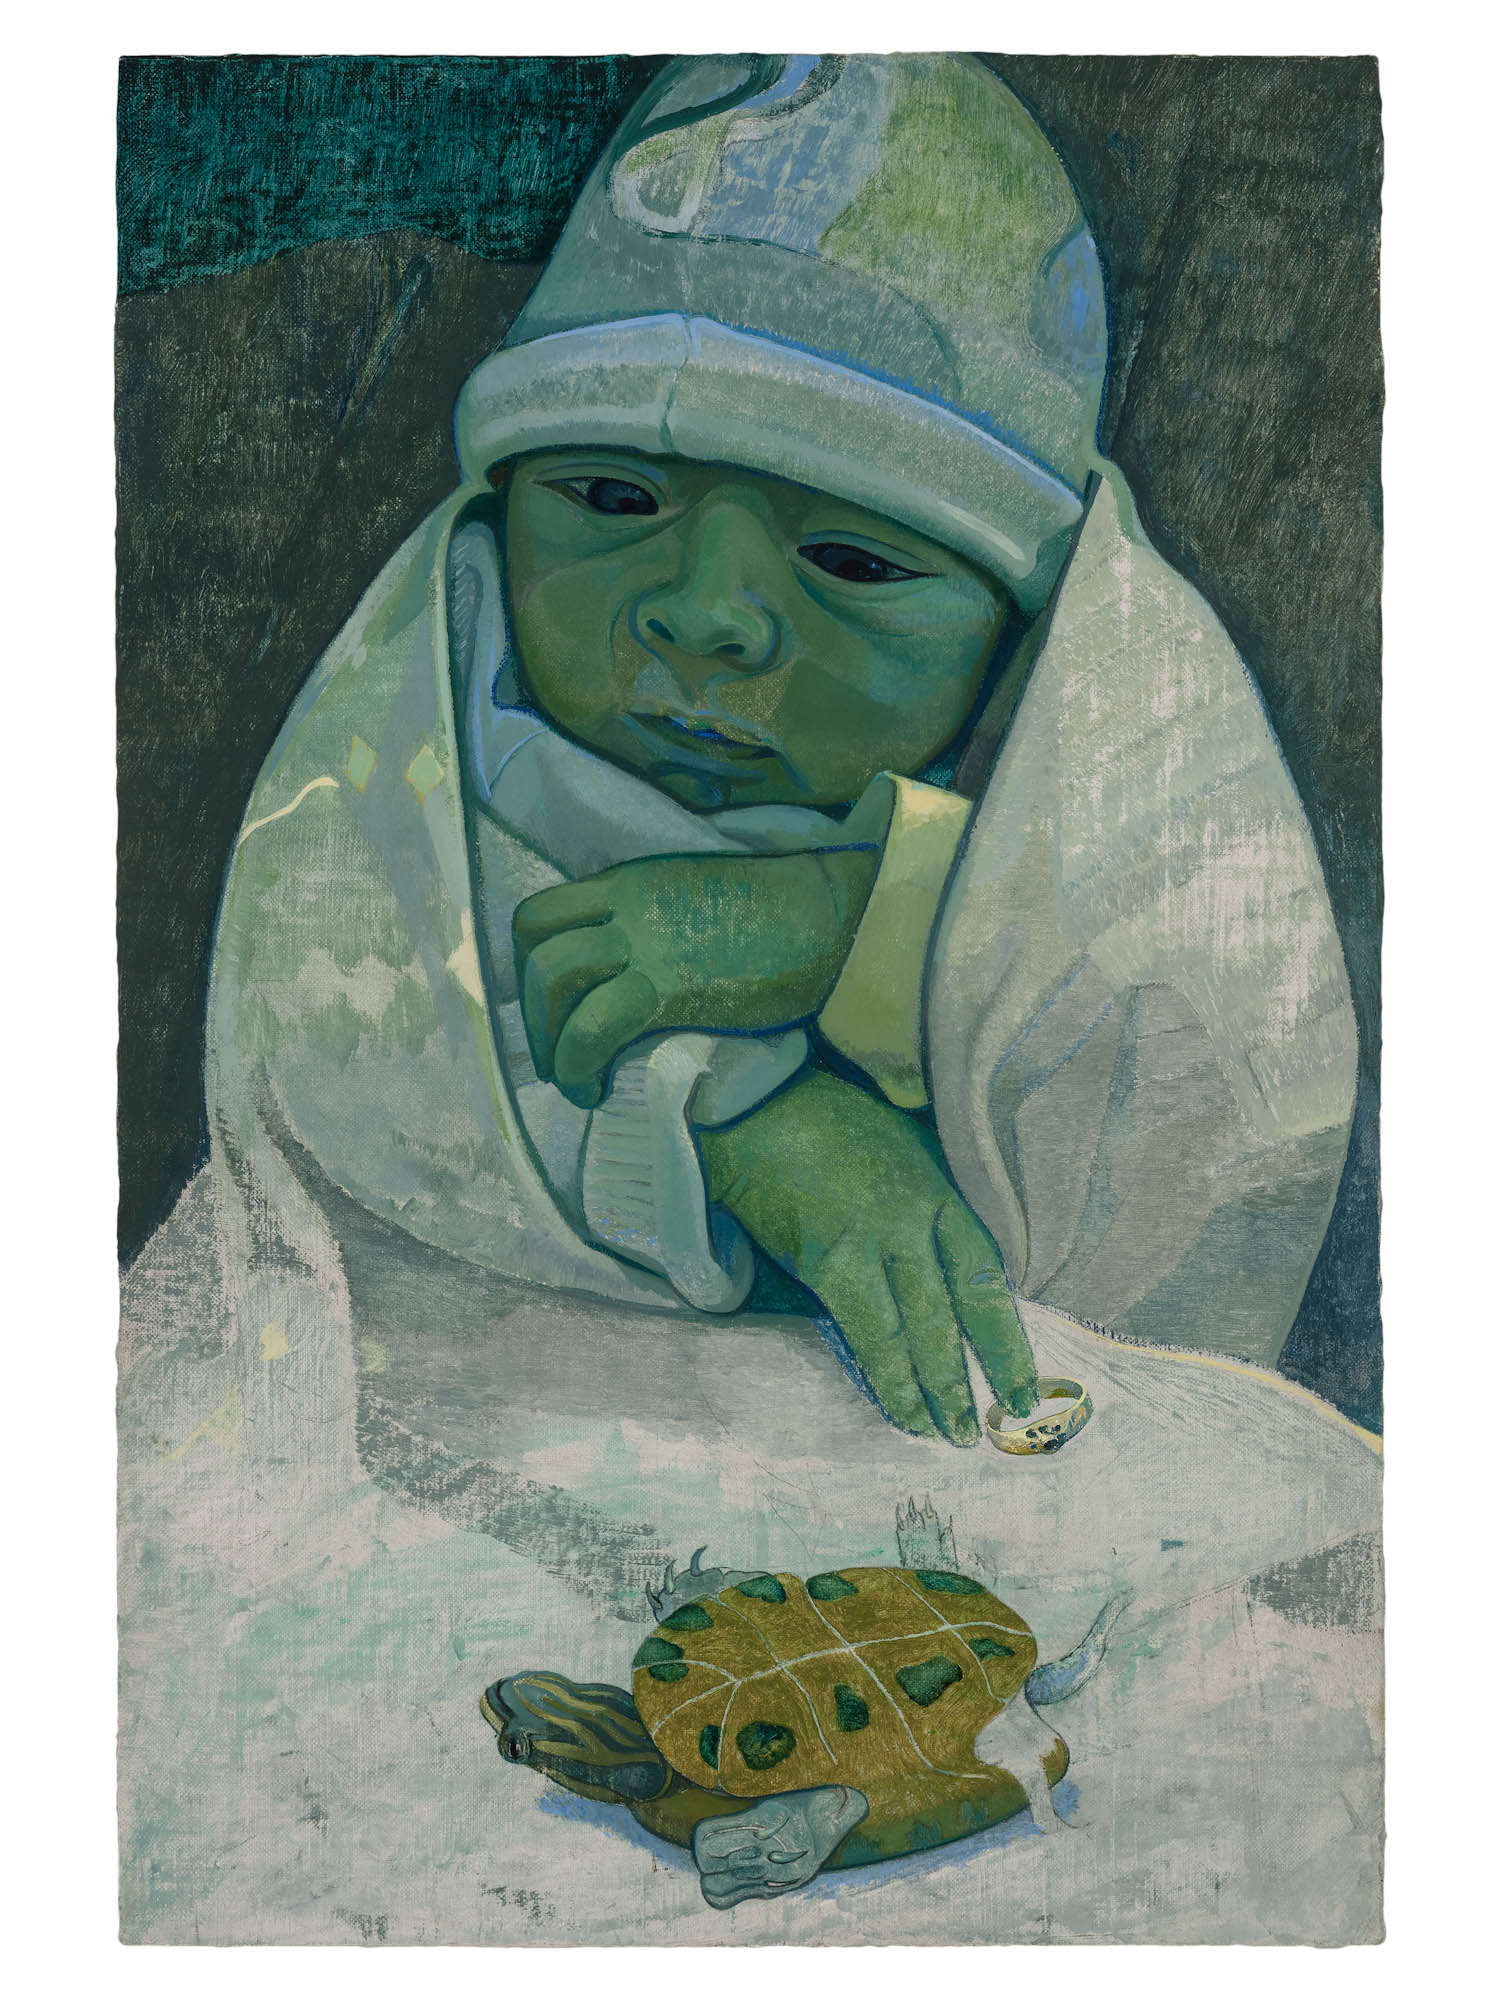 <i>R with Turtle</i>, 2018<br />Oil on canvas mounted on wood<br />14 1/8 x 9 1/2 inches (36 x 24 cm)<br />14 7/8 x 10 1/8 x 1 1/2 inches (37.8 x 25.8 x 4 cm) framed